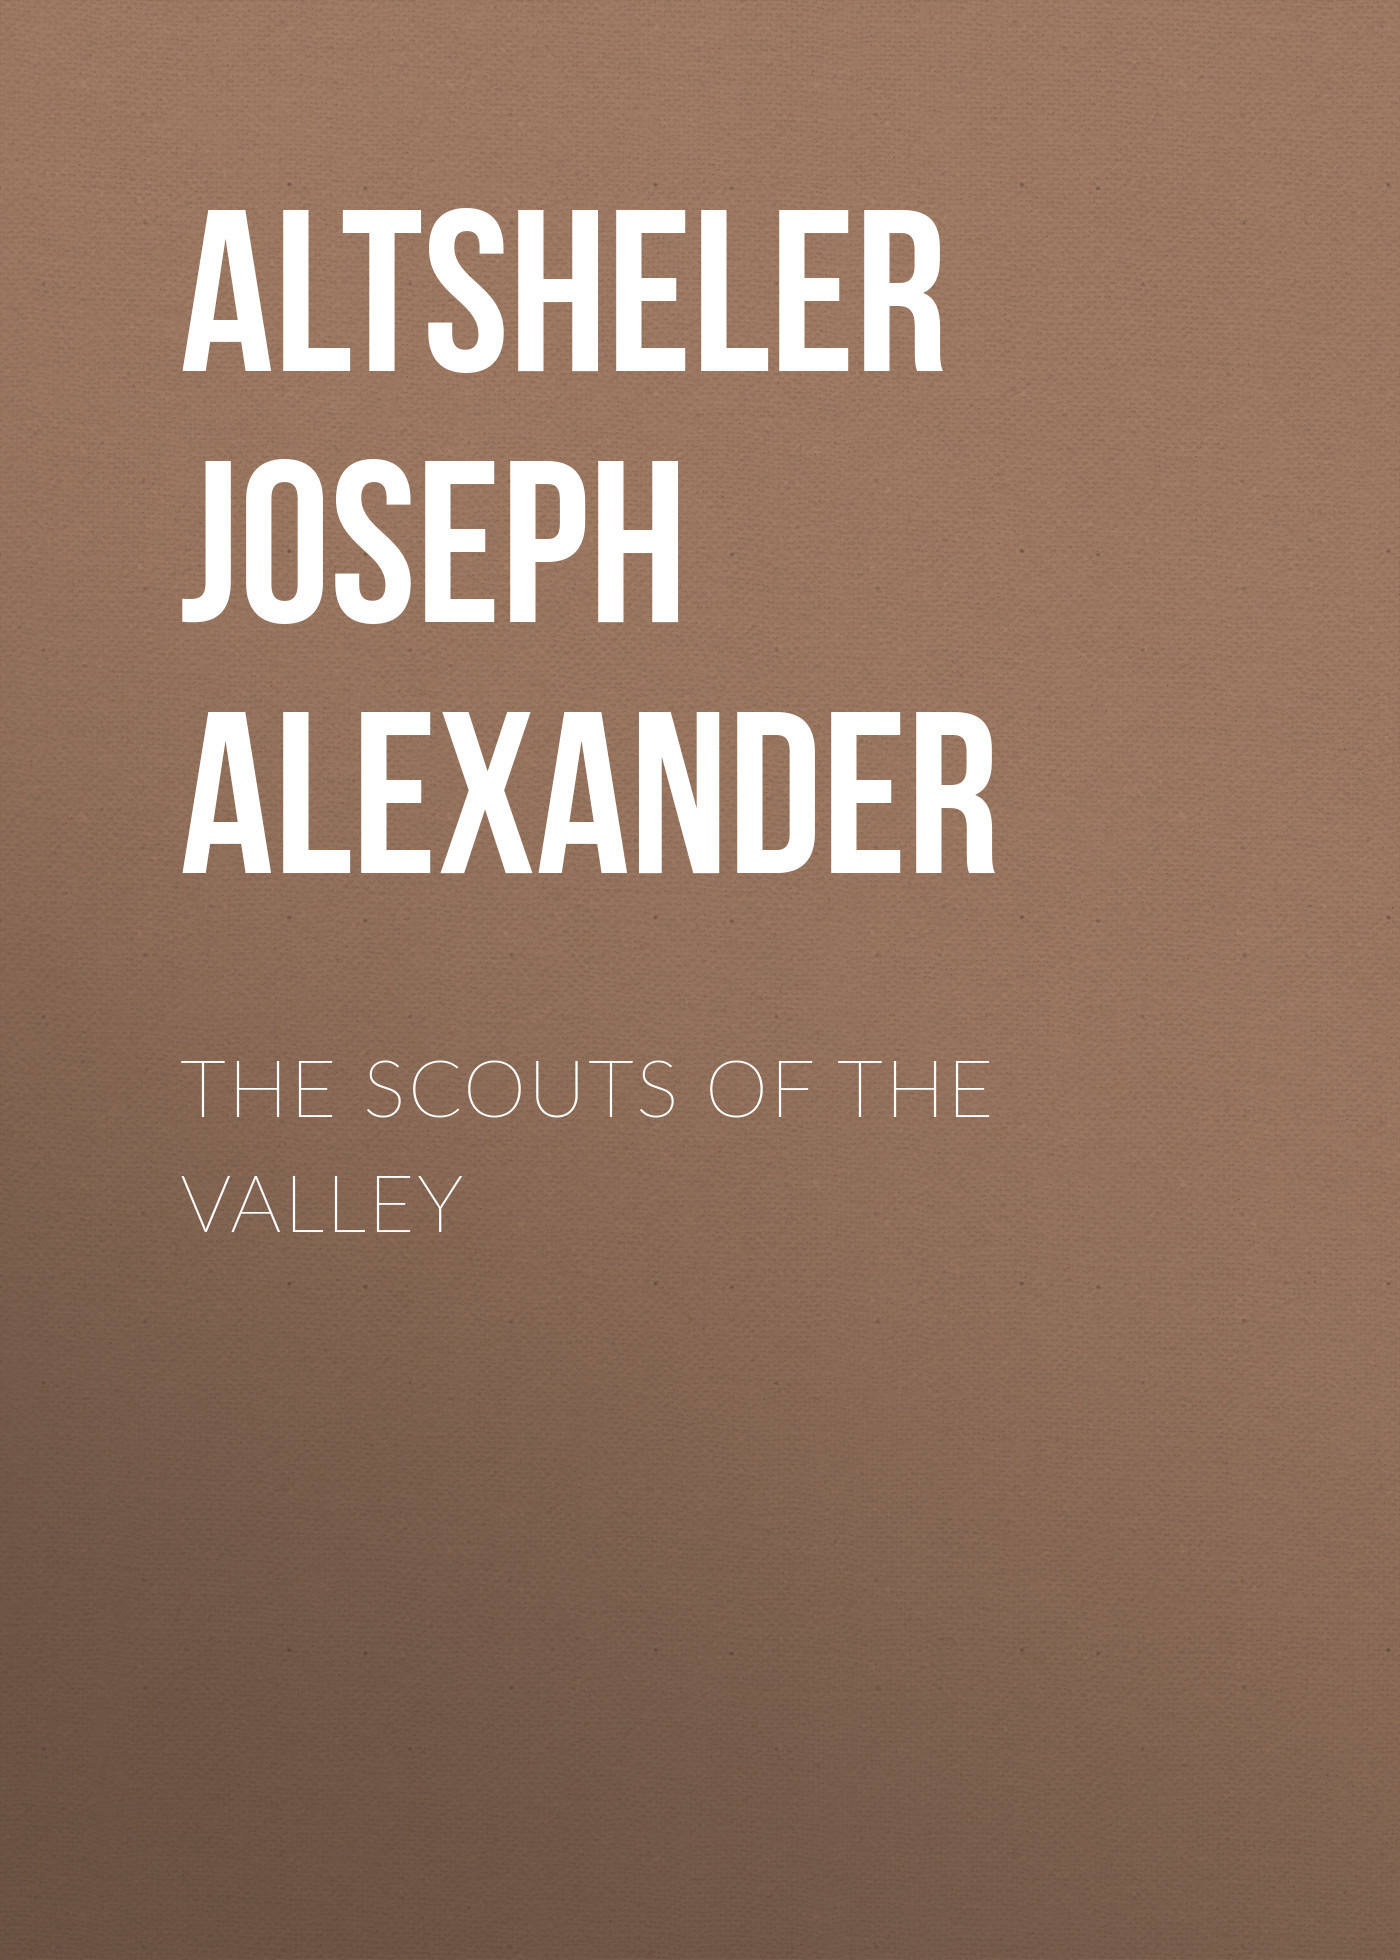 Altsheler Joseph Alexander The Scouts of the Valley soone valley heaven at the verge of wreck